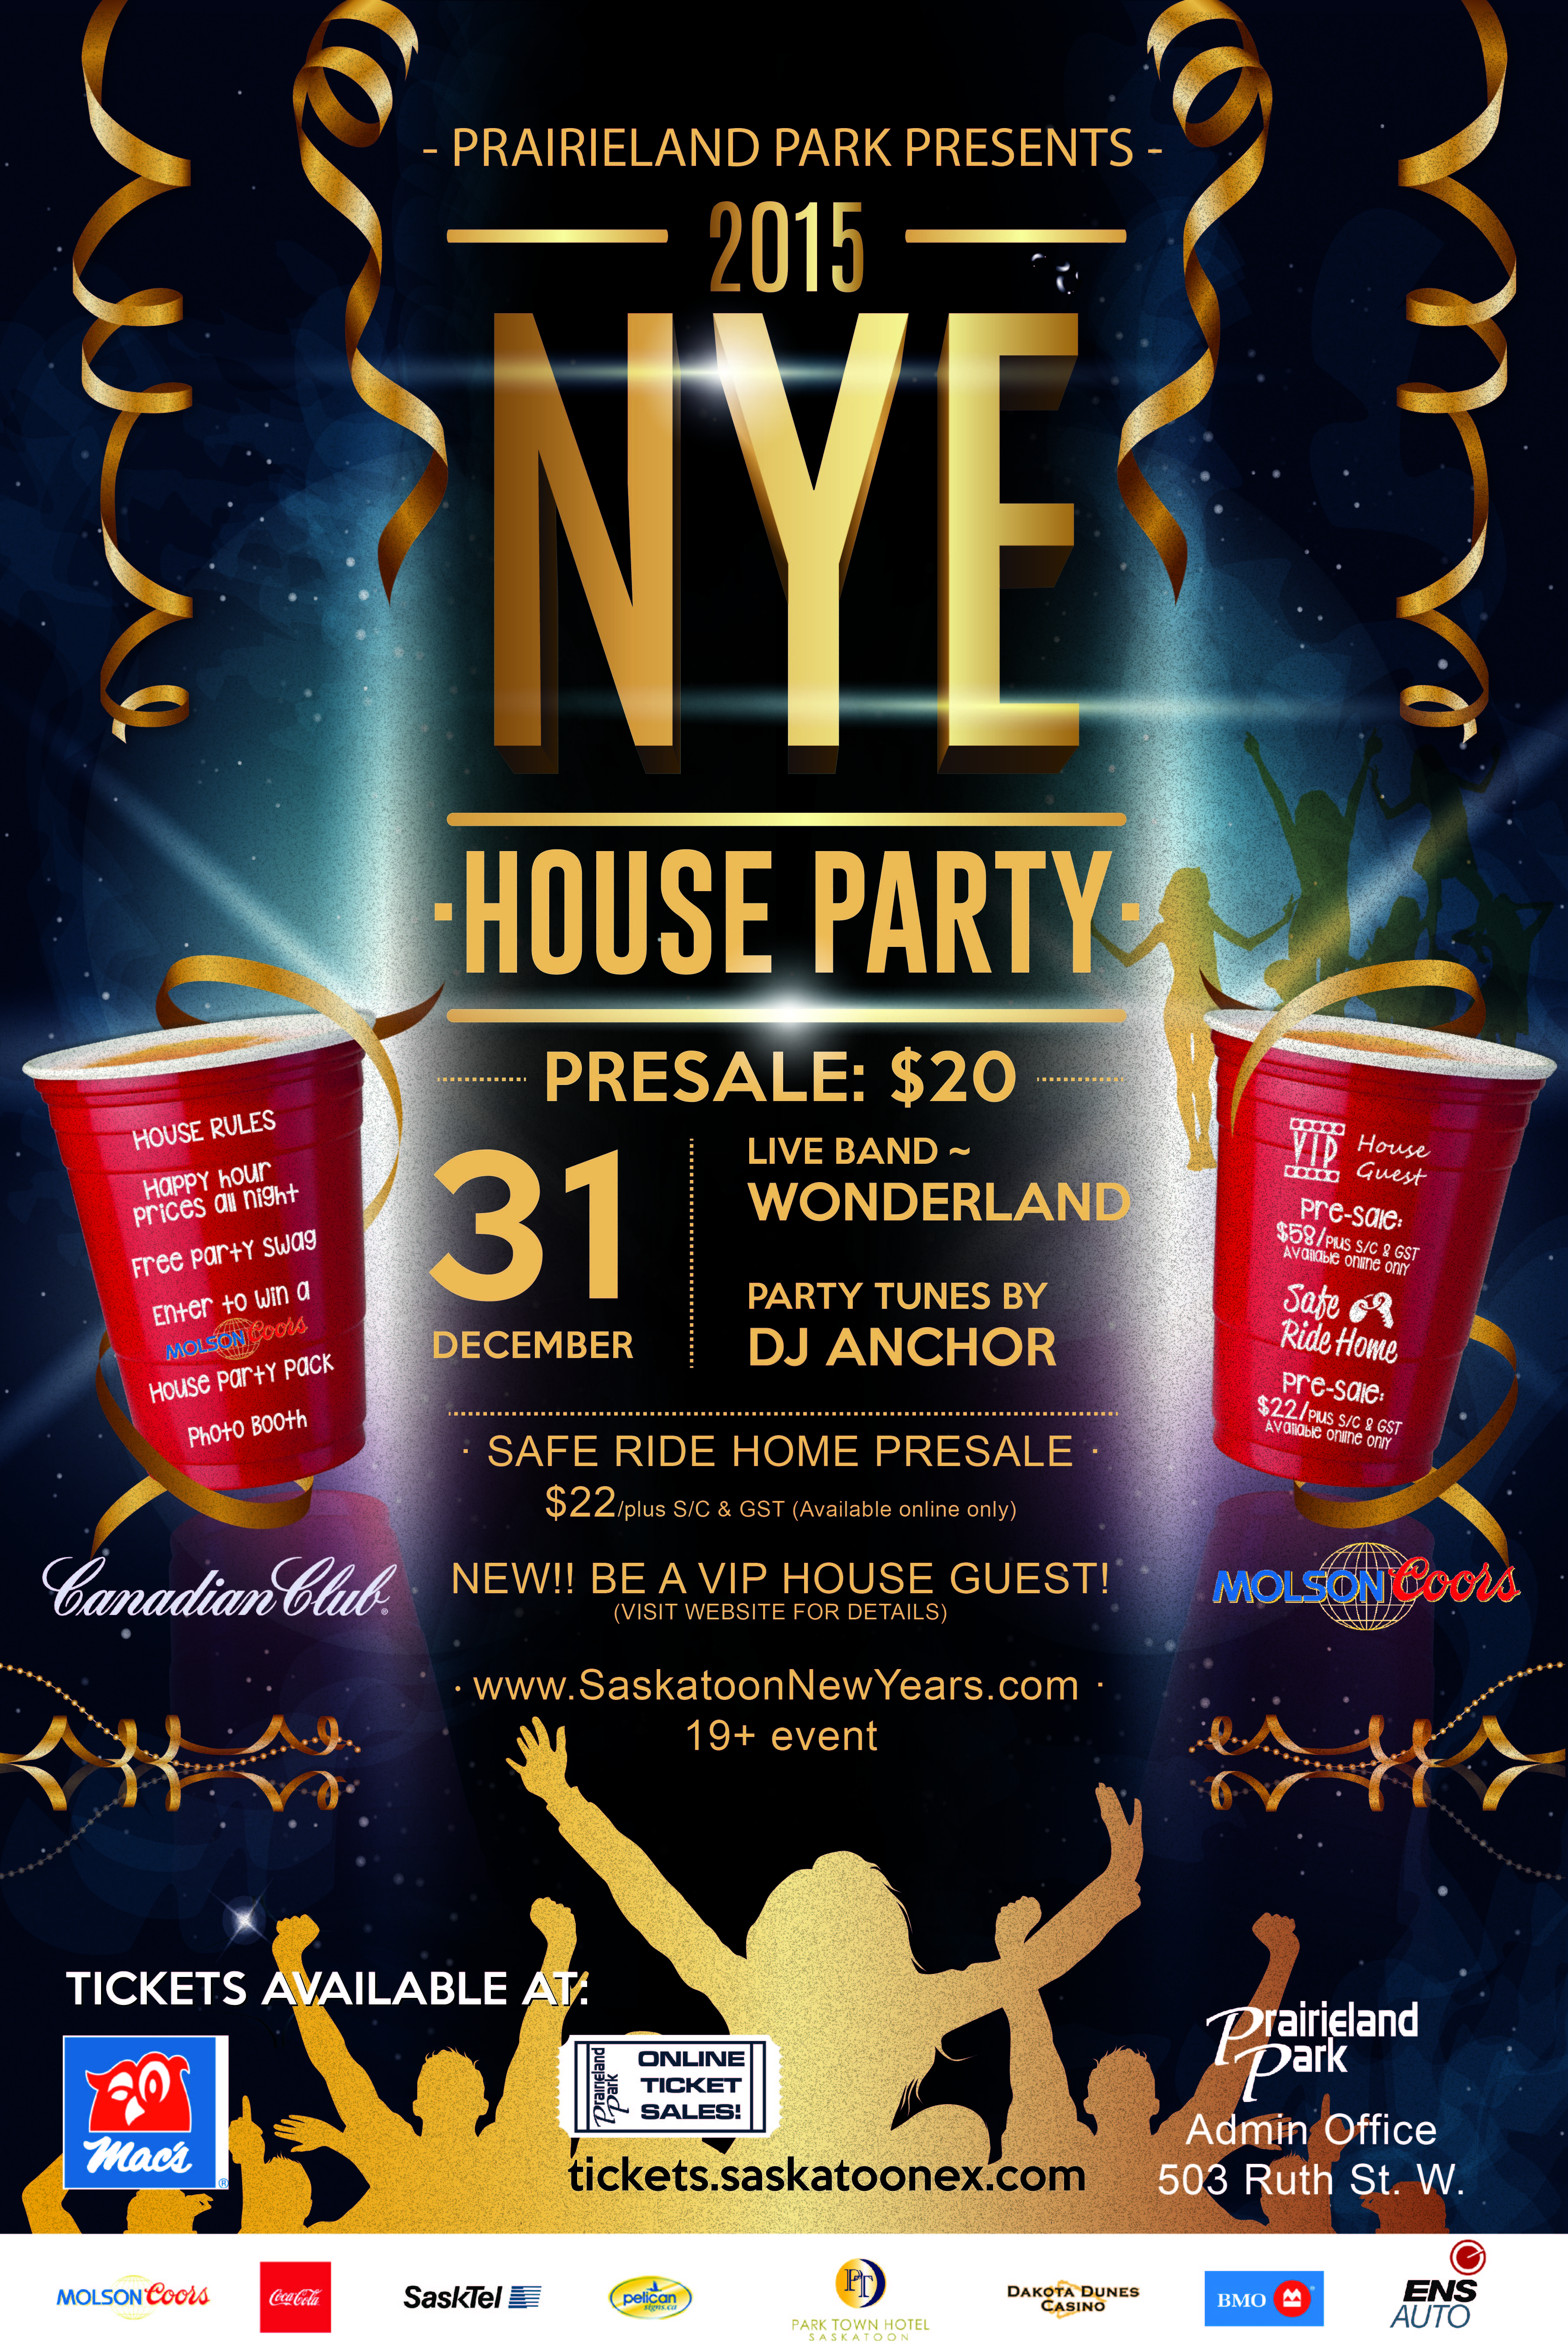 Saskatoon's Biggest New Years Eve Party! Prairieland Park w/ Dj Anchor - Image 1